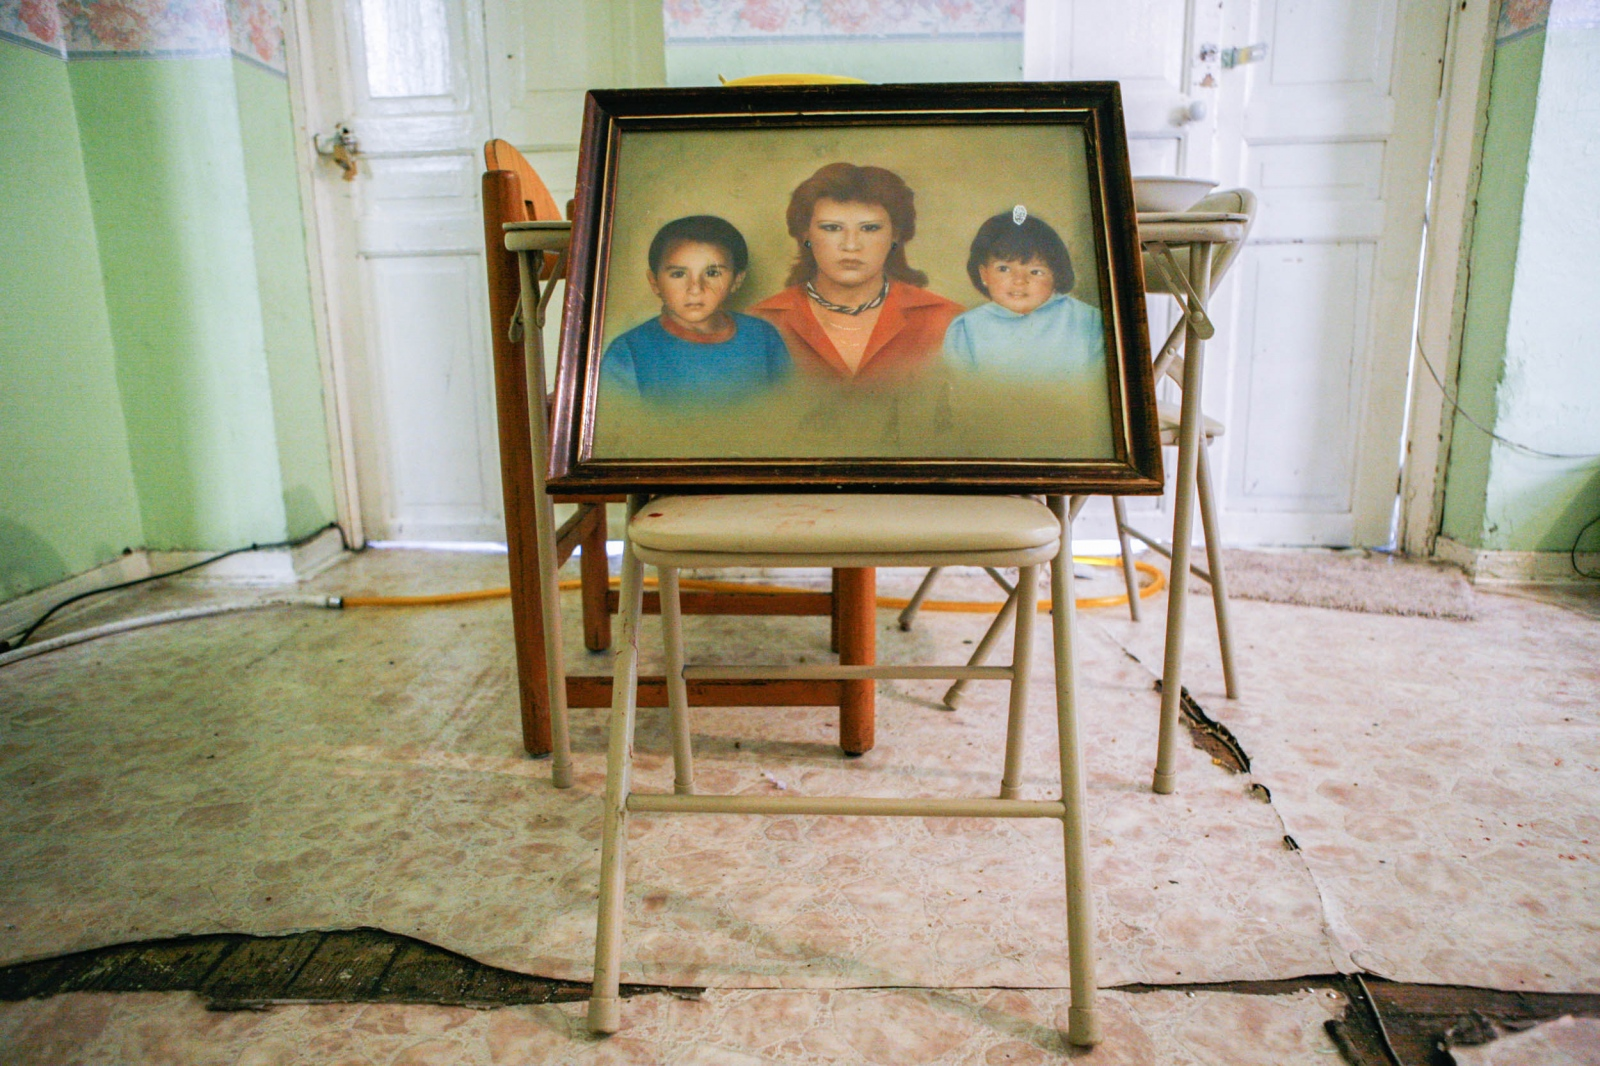 · Portrait of Jackeline and her two kids in the apartment which they resided for over a decade. The same apartment gave refuge to Lalo -the boy in the portrait- and his family for some time before he got divorced and Silvia moved to the rooftop with her three kids to live on a 1.5m x 1.5m room. 7 de julio de 2009.  // · Retrato de Jacqueline y sus dos hijos en el departamento que habitaron durante una década, mismo que más tarde albergó a la familia de Lalo —el niño en el retrato— por una temporada antes de que se divorciara de Silvia y que ella se mudara a a la azotea con sus tres hijos para vivir en un cuarto de 1.5m x 1.5 m. July 7th, 2009.